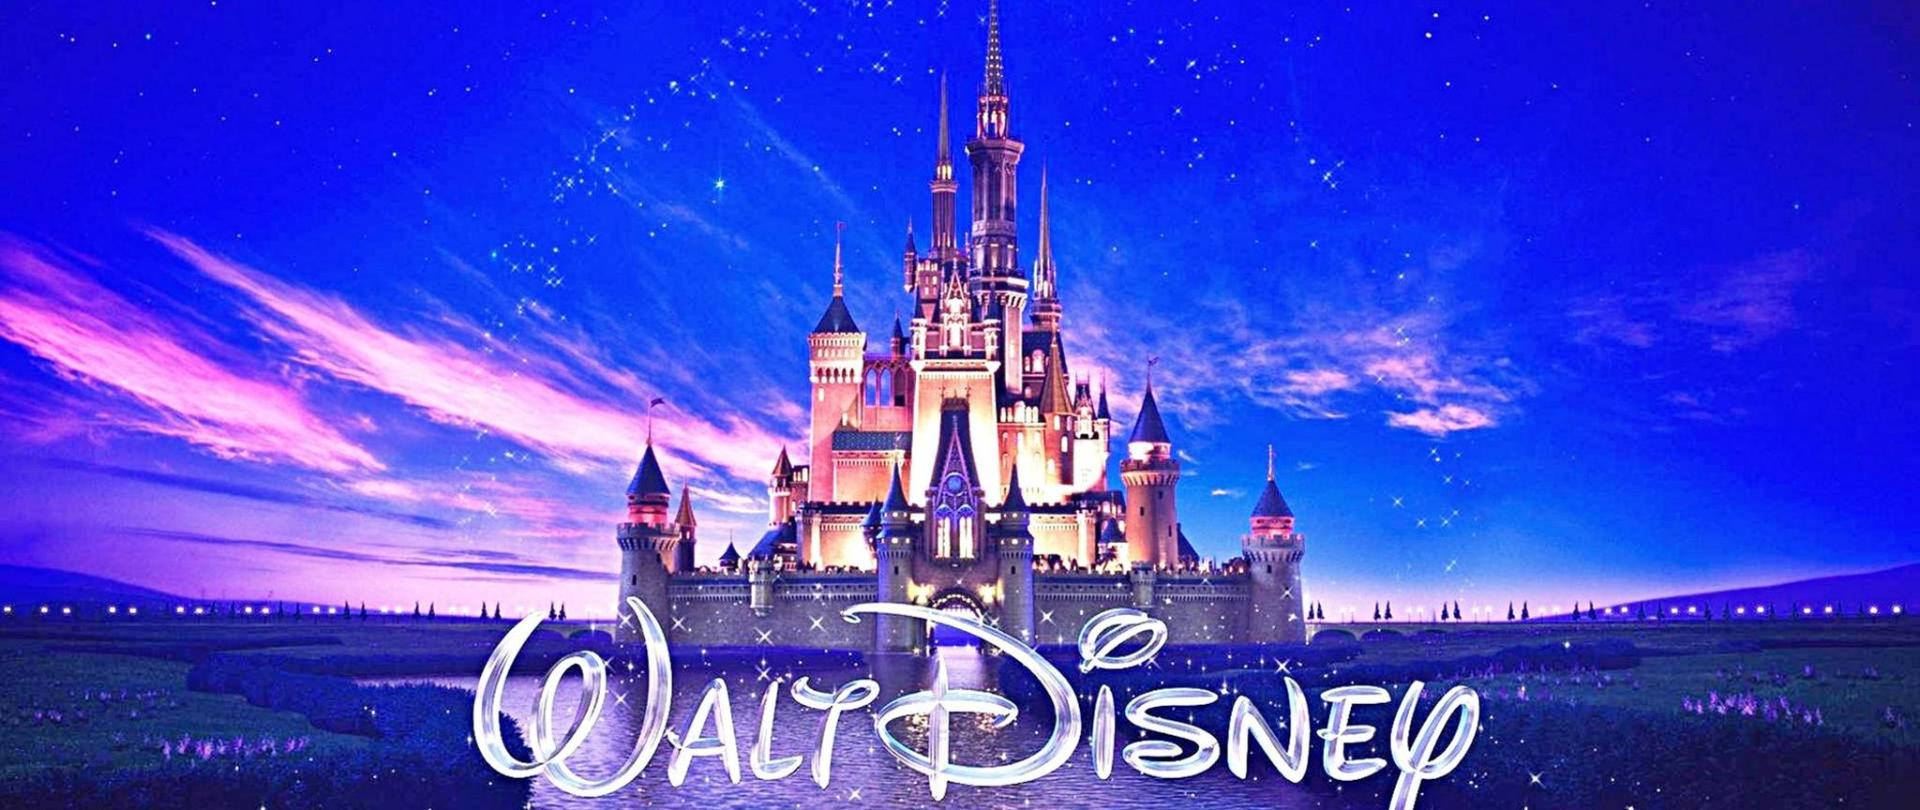 Walt-Disney-Screencaps-The-Walt-Disney-Logo-walt-disney-caratteri-31865565-2560-1440.jpg